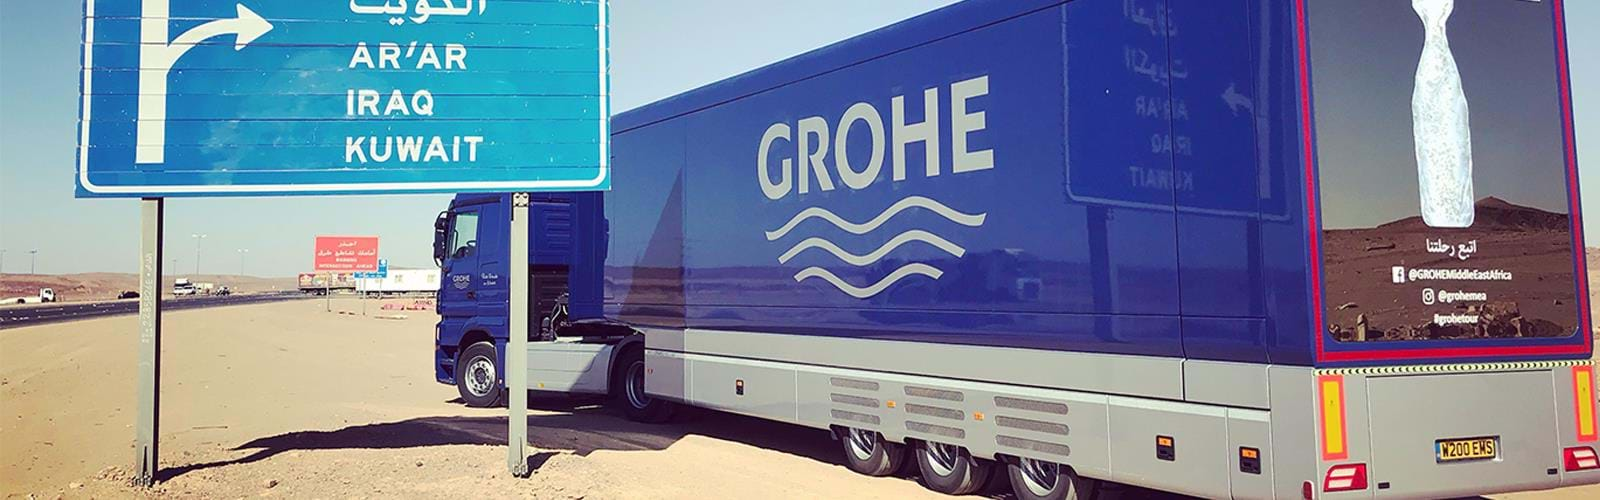 Grohe Providing a gateway to new markets.png